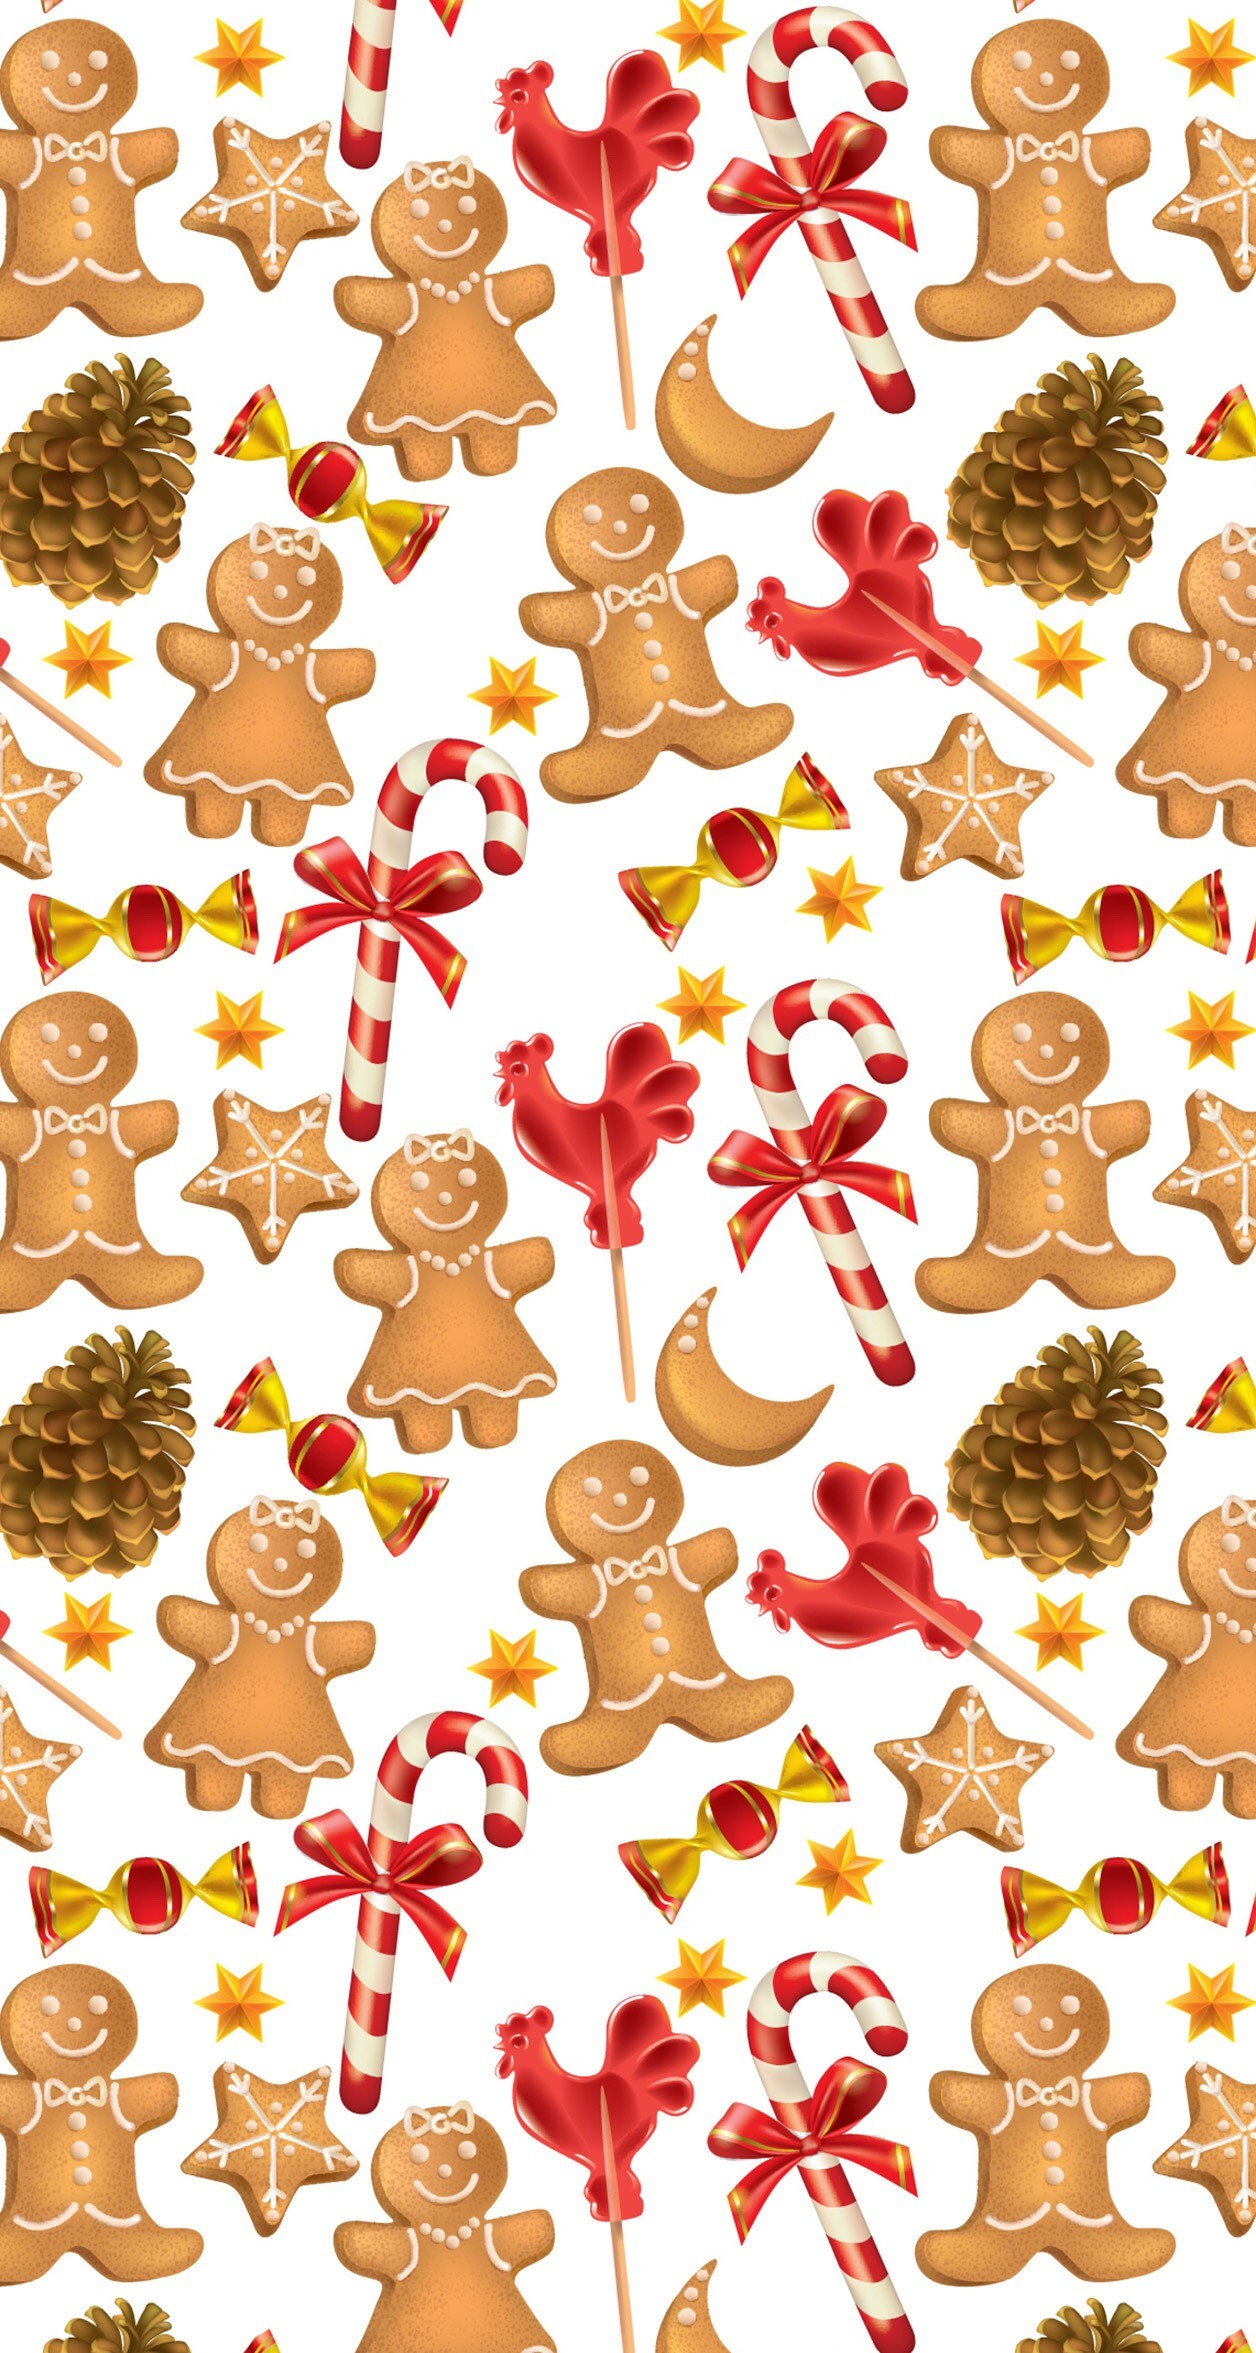 1256x2353 Gingerbread men christmas candy cane